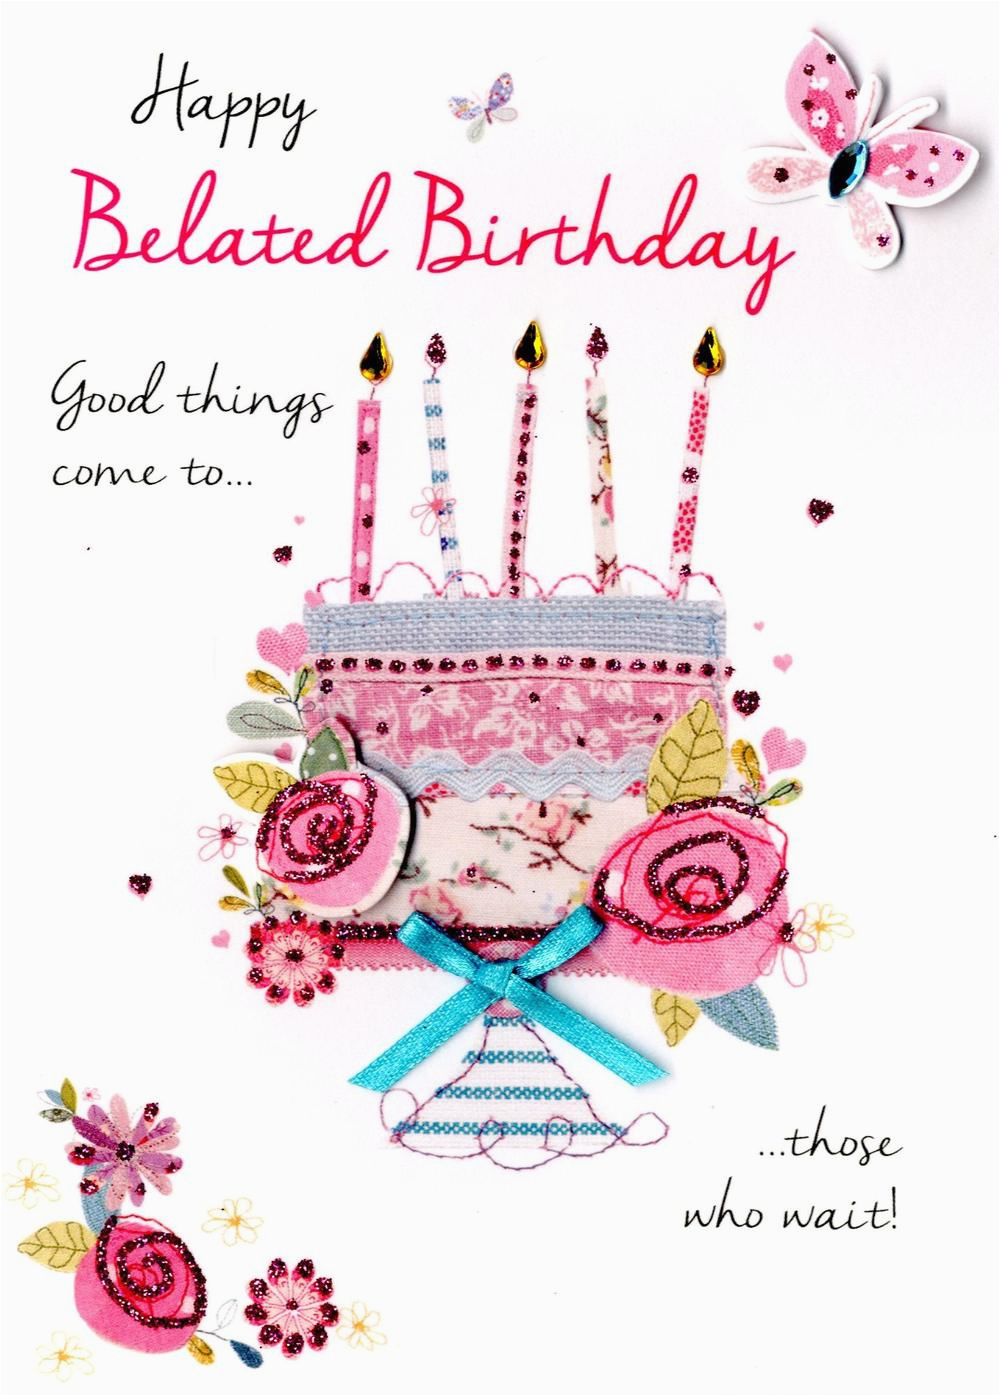 What to Say On A Happy Birthday Card Happy Belated Birthday Greeting Card Cards Love Kates